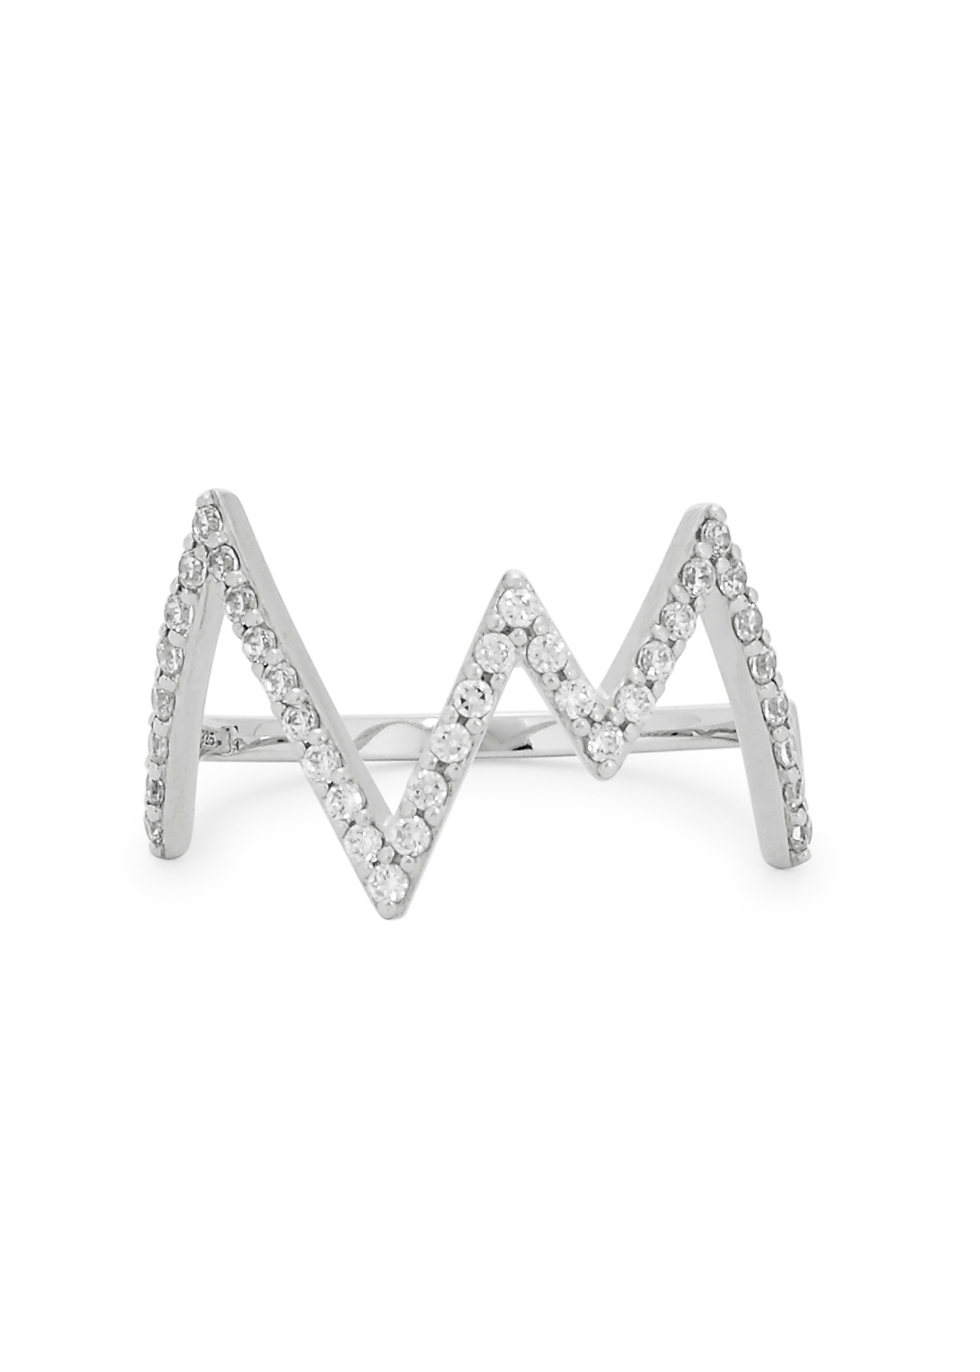 ROSIE FORTESCUE HEARTBEAT STERLING SILVER SRING